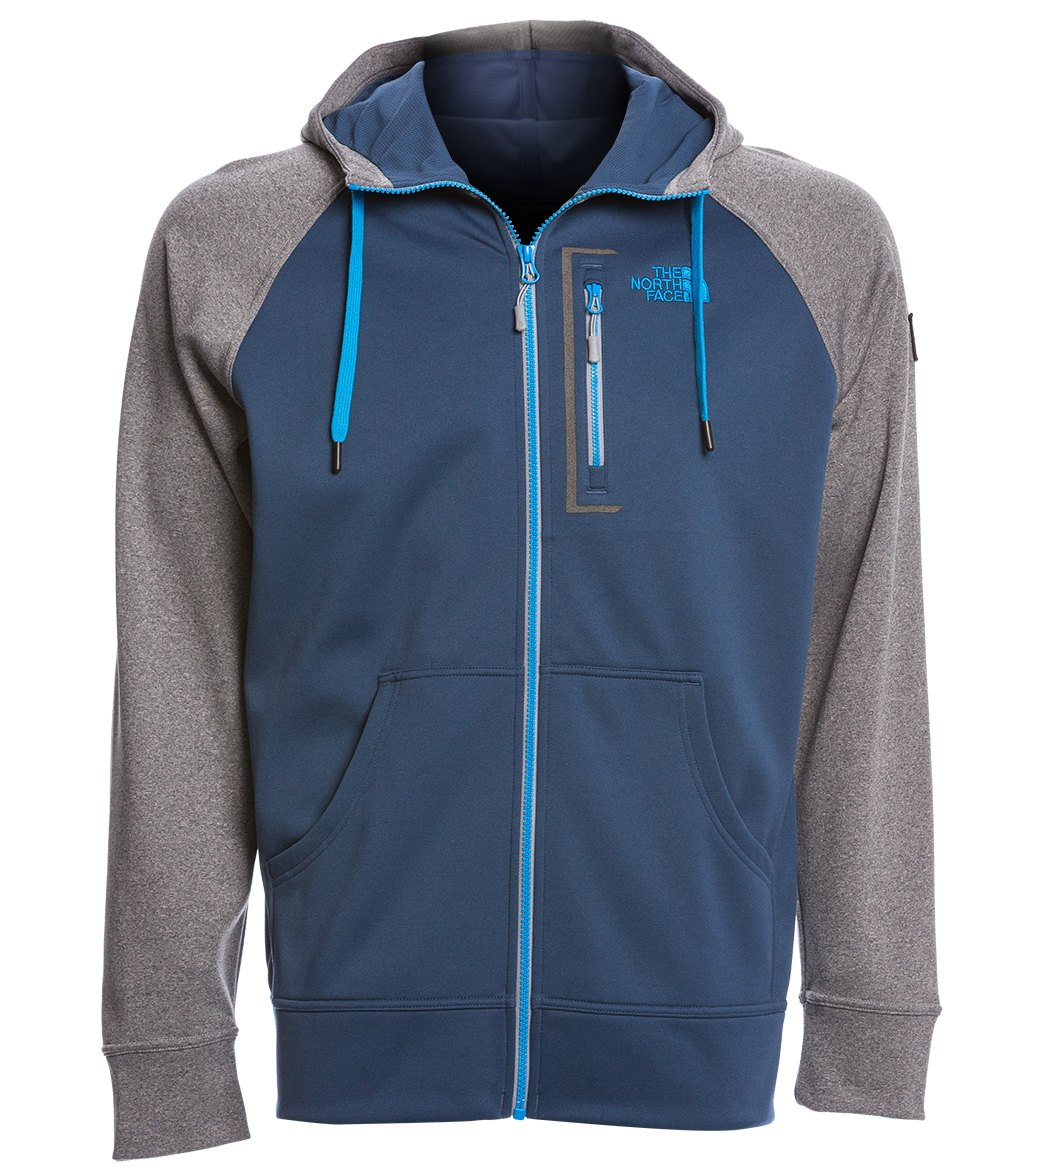 The North Face Men s Mack Mays Full Zip Hoodie at SwimOutlet.com - Free  Shipping daacd48bf8e7